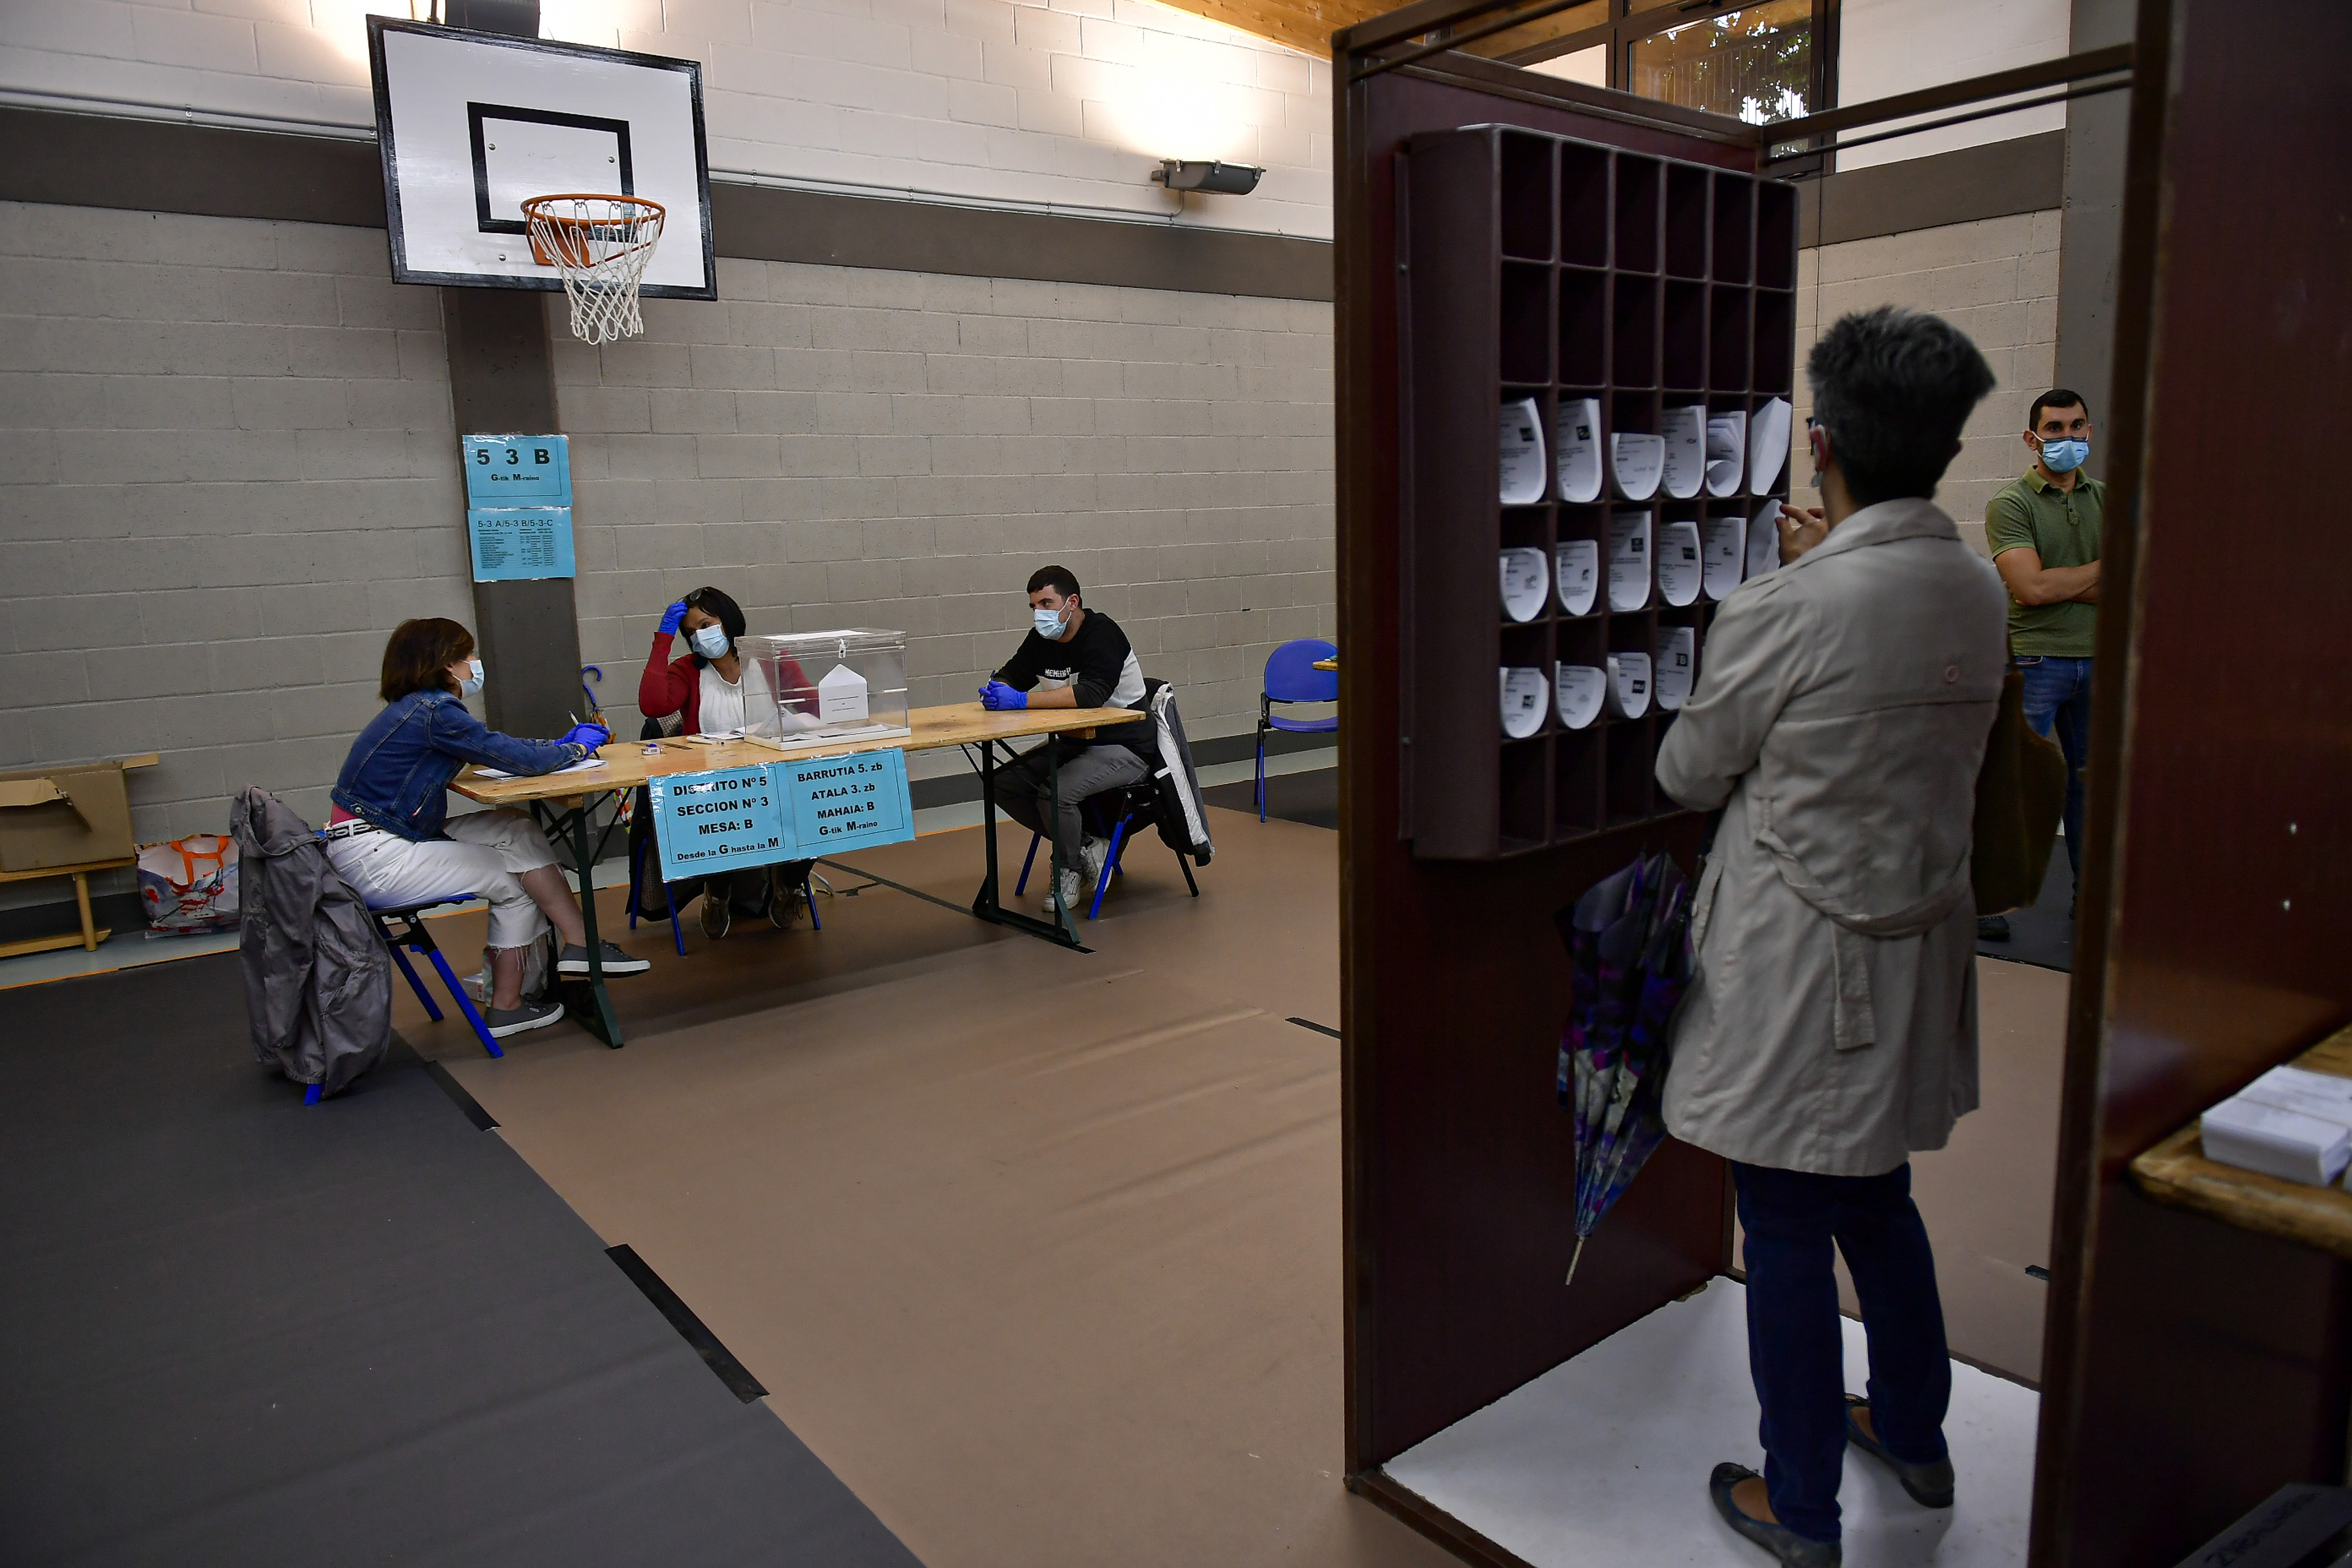 A woman prepares her vote while staff members of a polling station wear face masks to help curb the spread of the coronavirus during the Basque regional election in the village of Durango, northern Spain, Sunday, July 12, 2020. Basque authorities are displaying special rules and practices in the protection against the coronavirus.